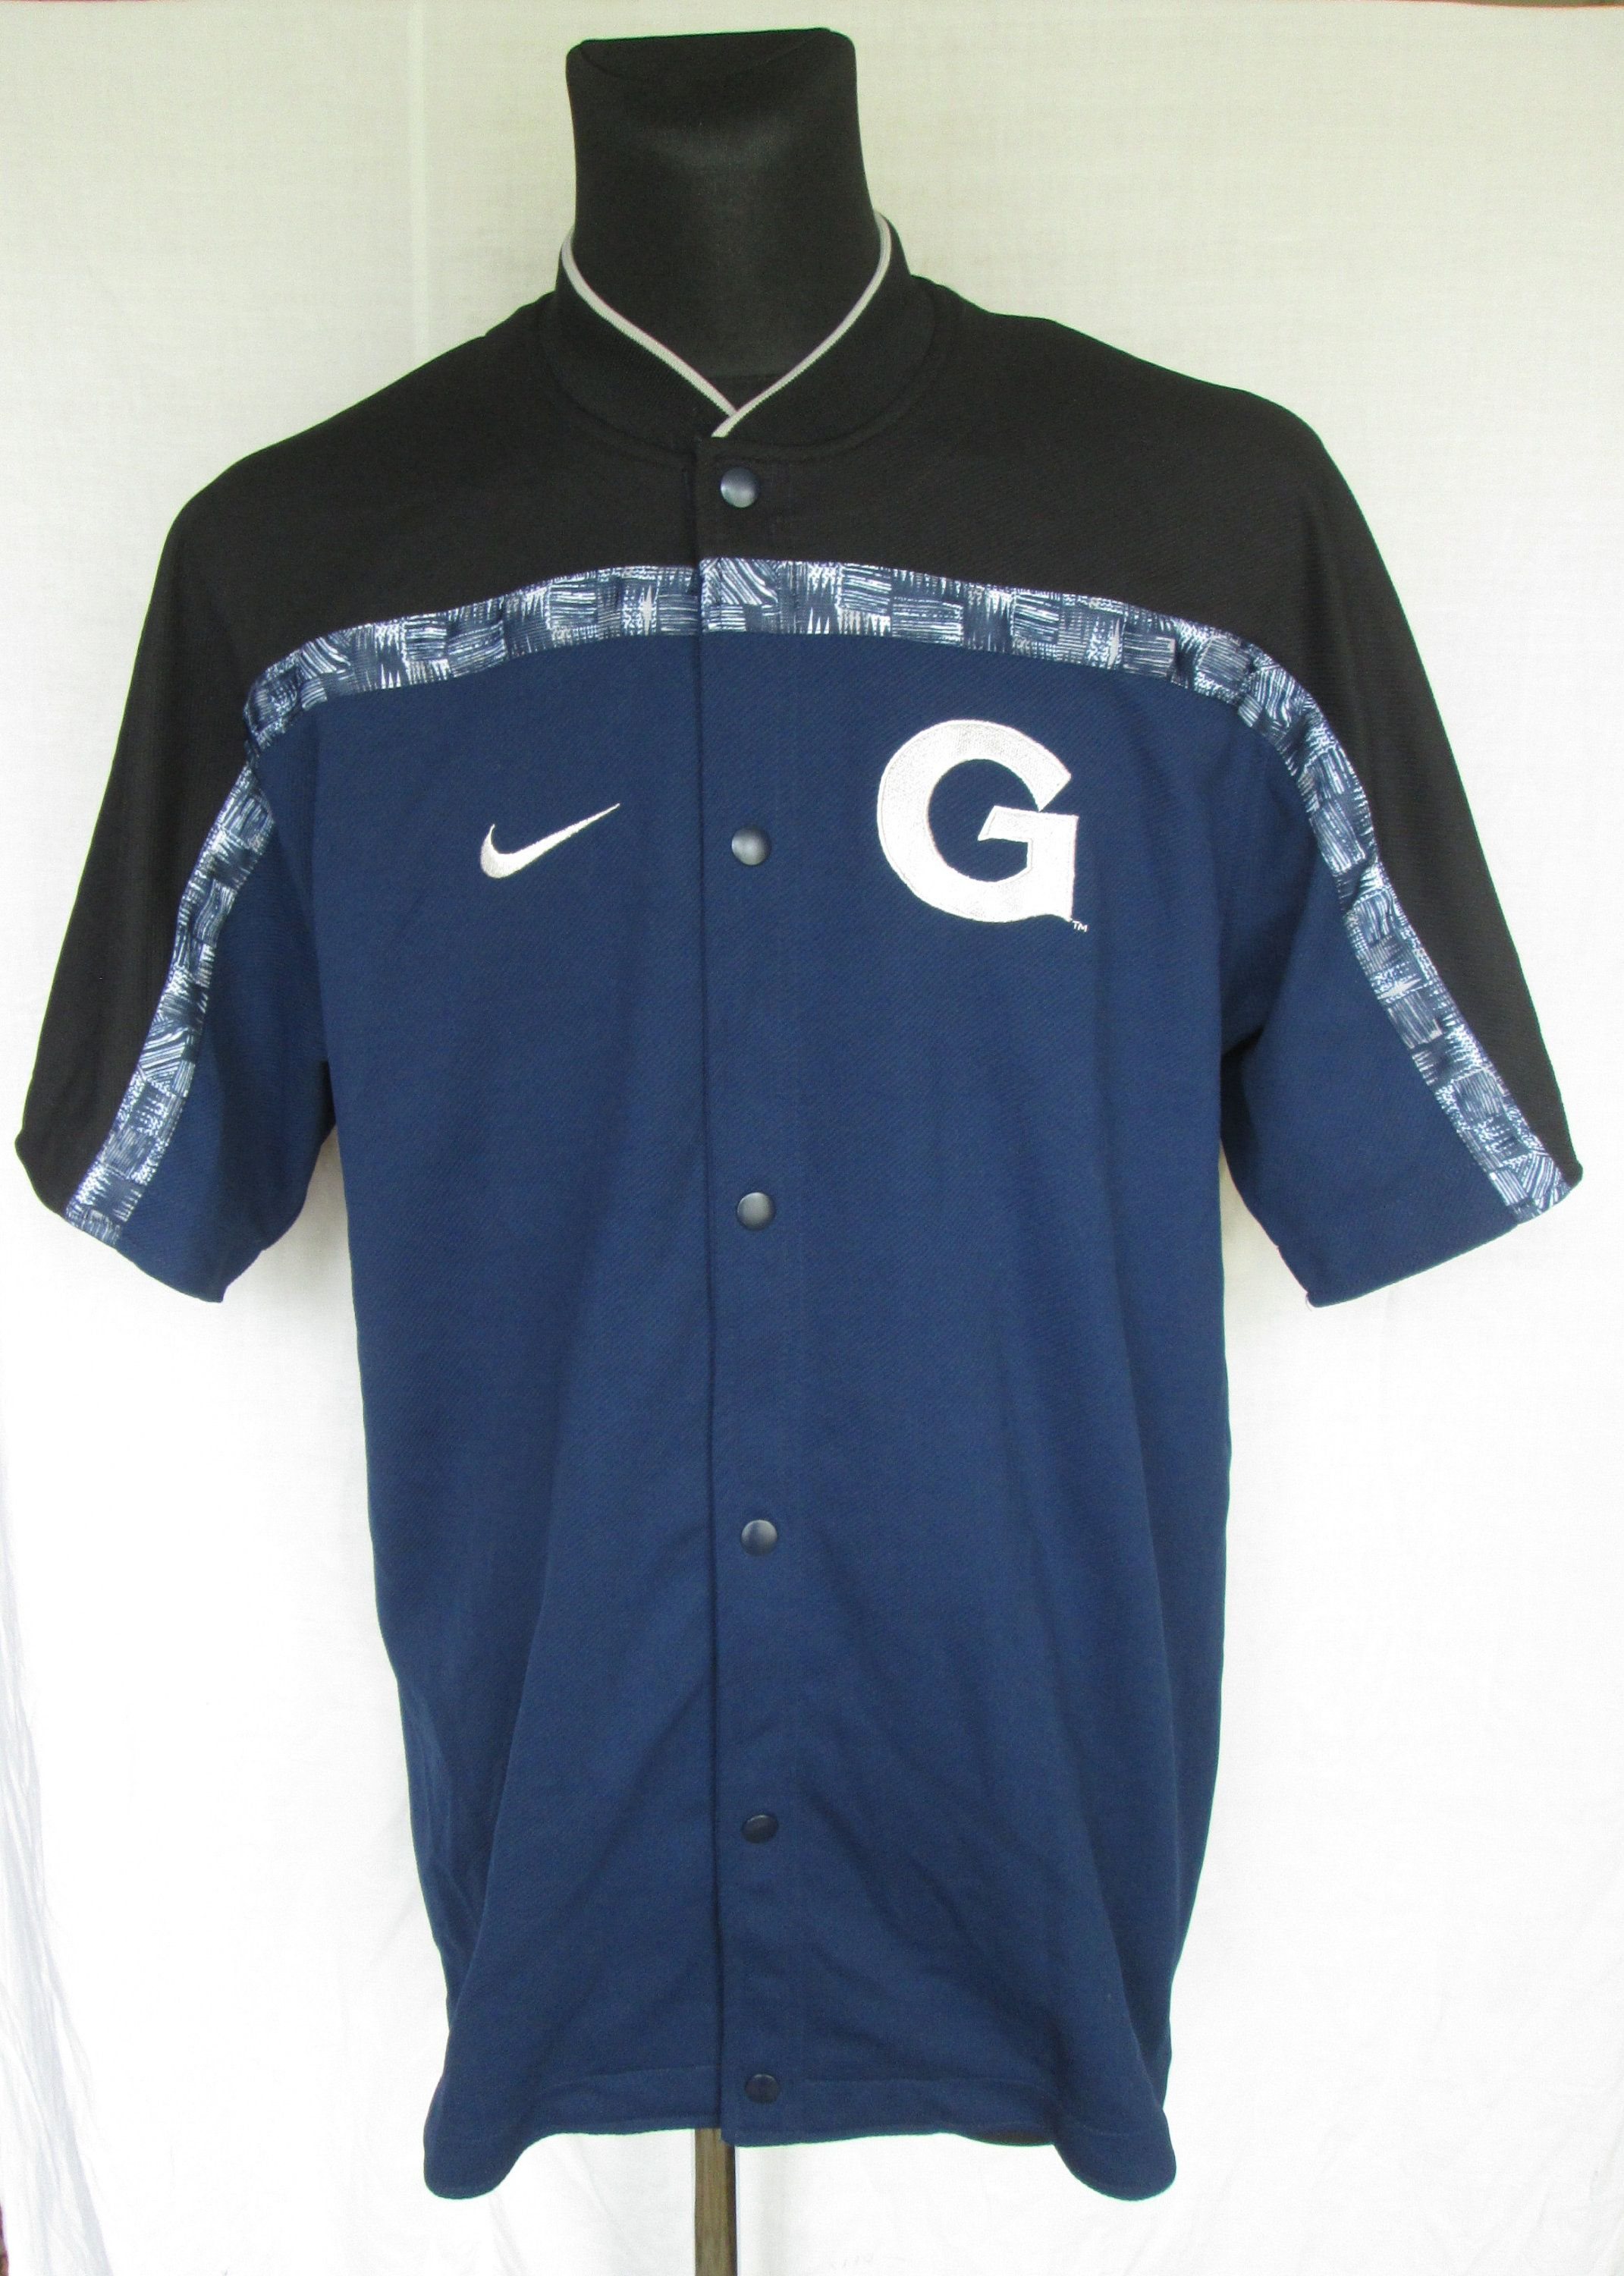 529797cb2 Vintage 90s Nike Team Sports Georgetown HOYAS NCAA Basketball Warm Up Shirt  Jacket Size L Made in Indonesia Used Worldwide Shipping #Georgetown  #basketball ...